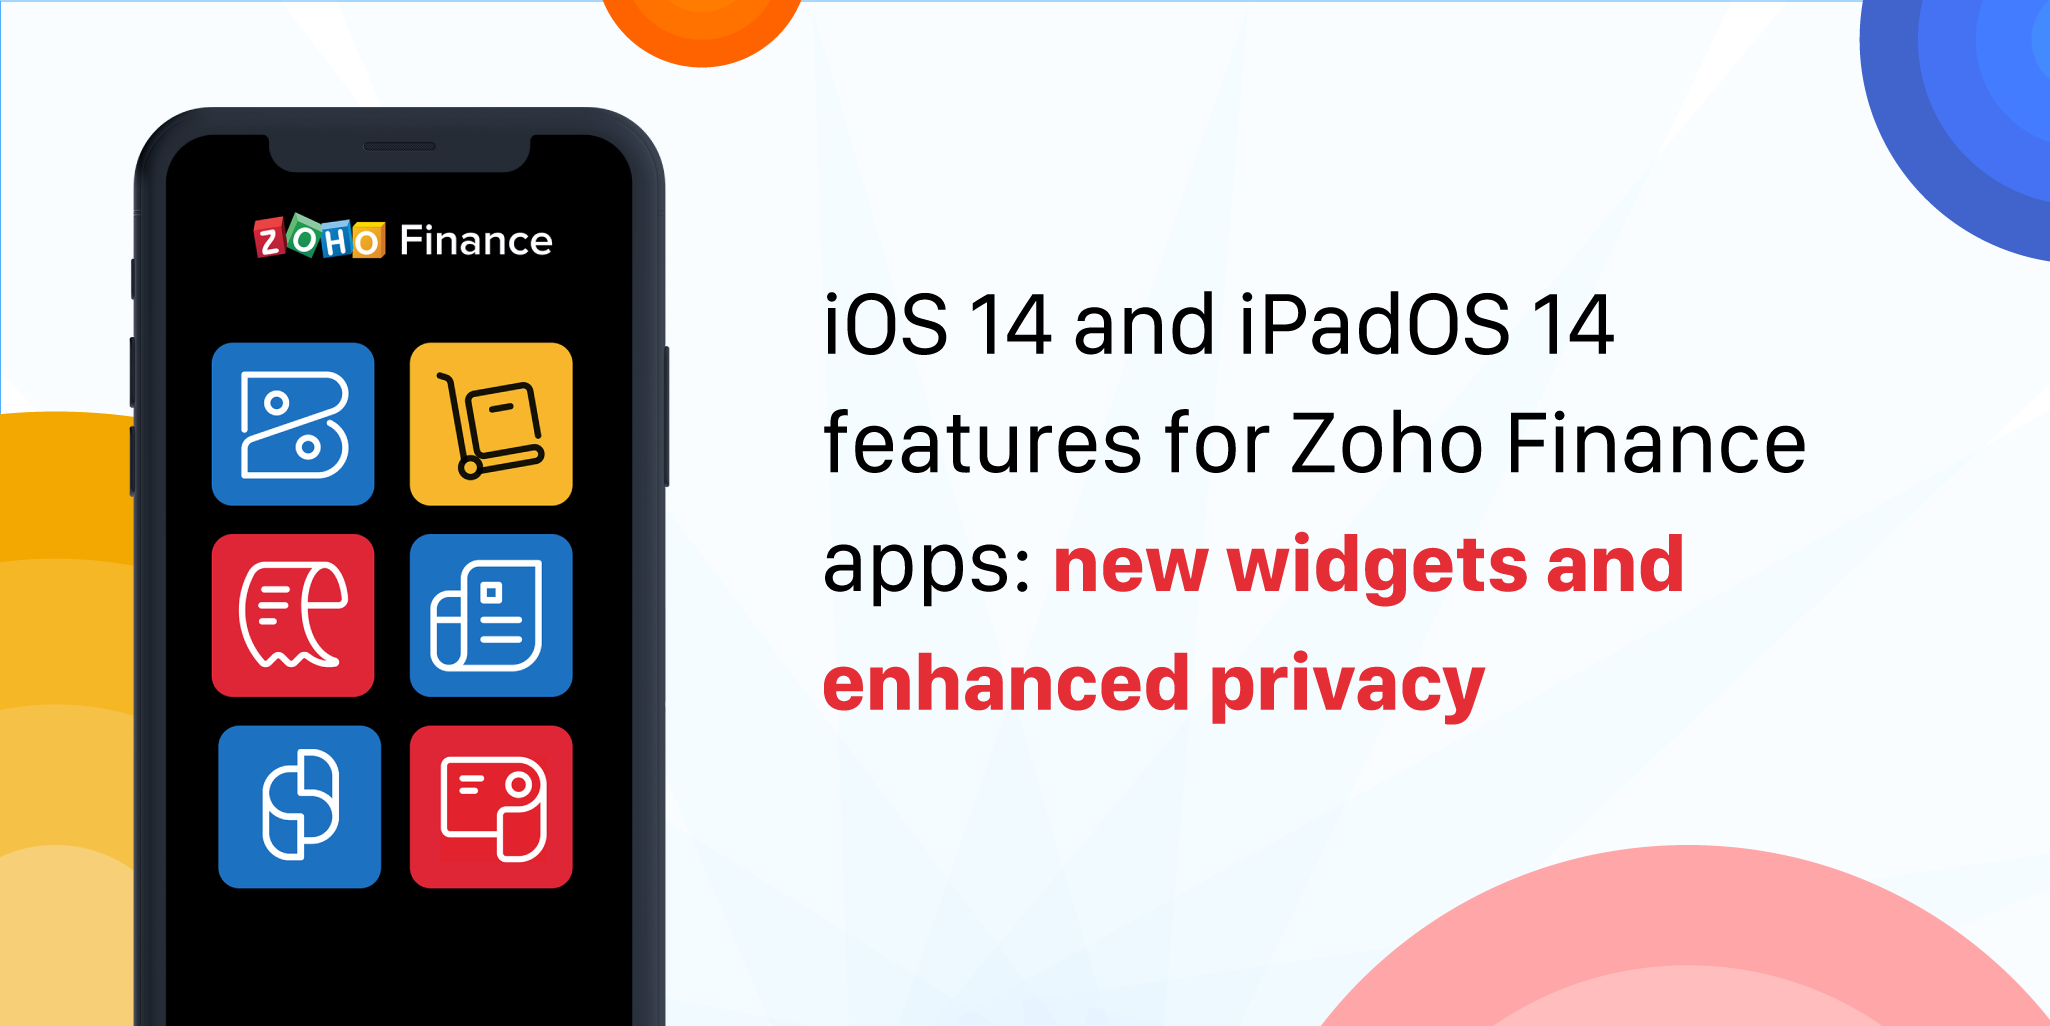 iOS 14 and iPadOS 14 features for Zoho Finance apps: New widgets and enhanced privacy